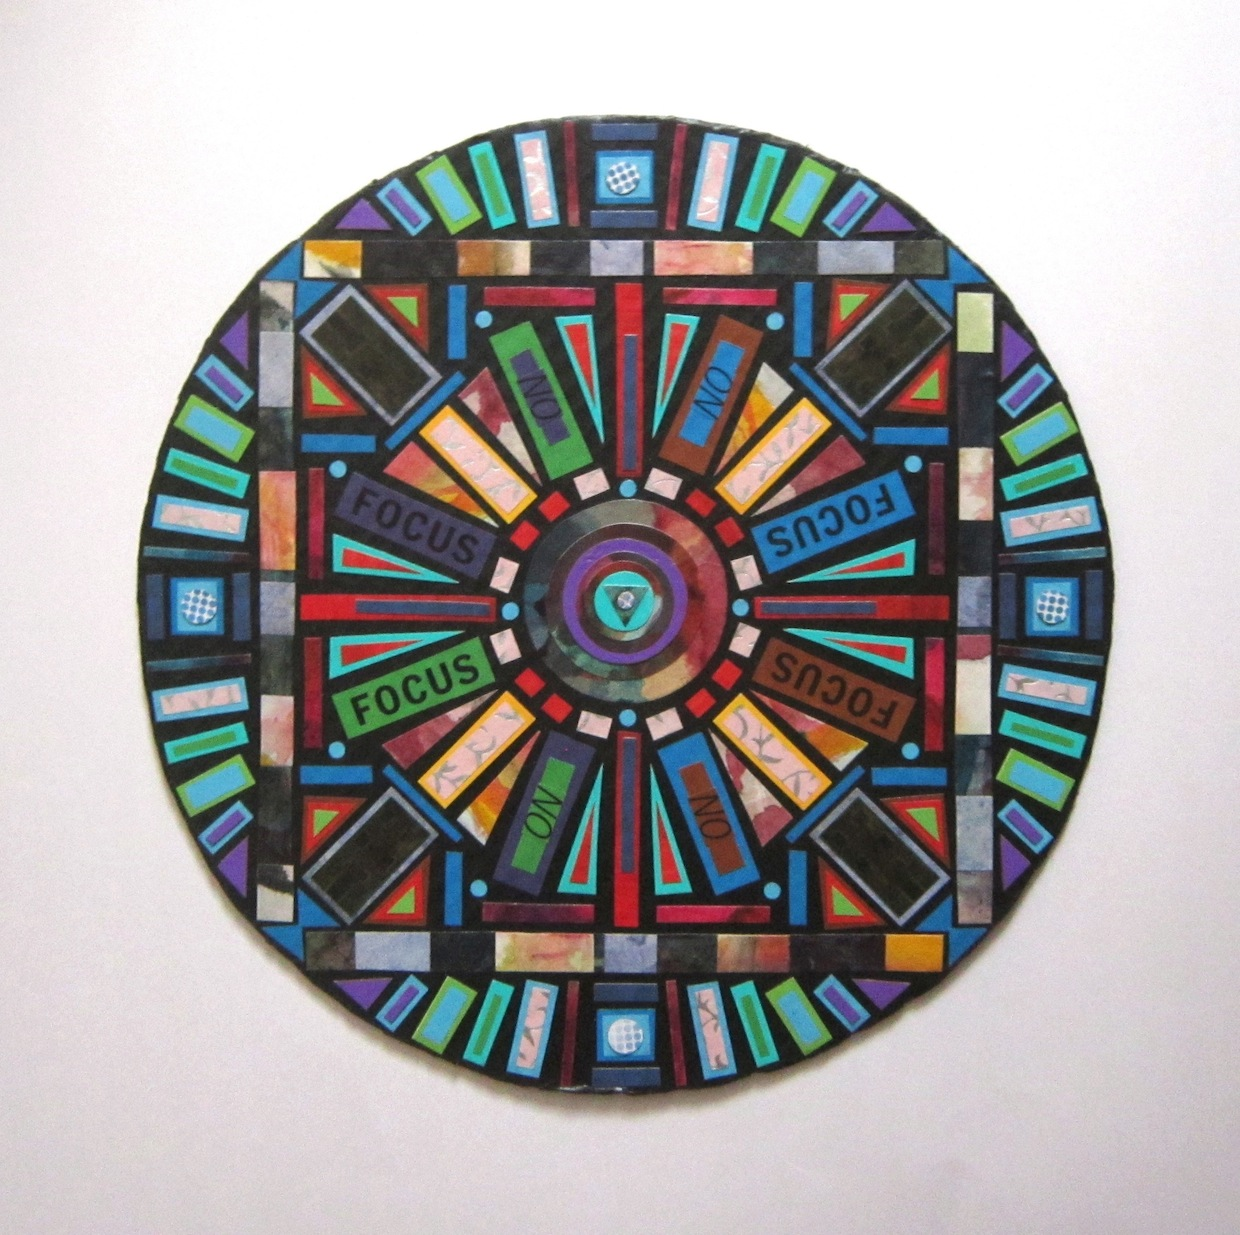 colorful paper/cardboard mandala